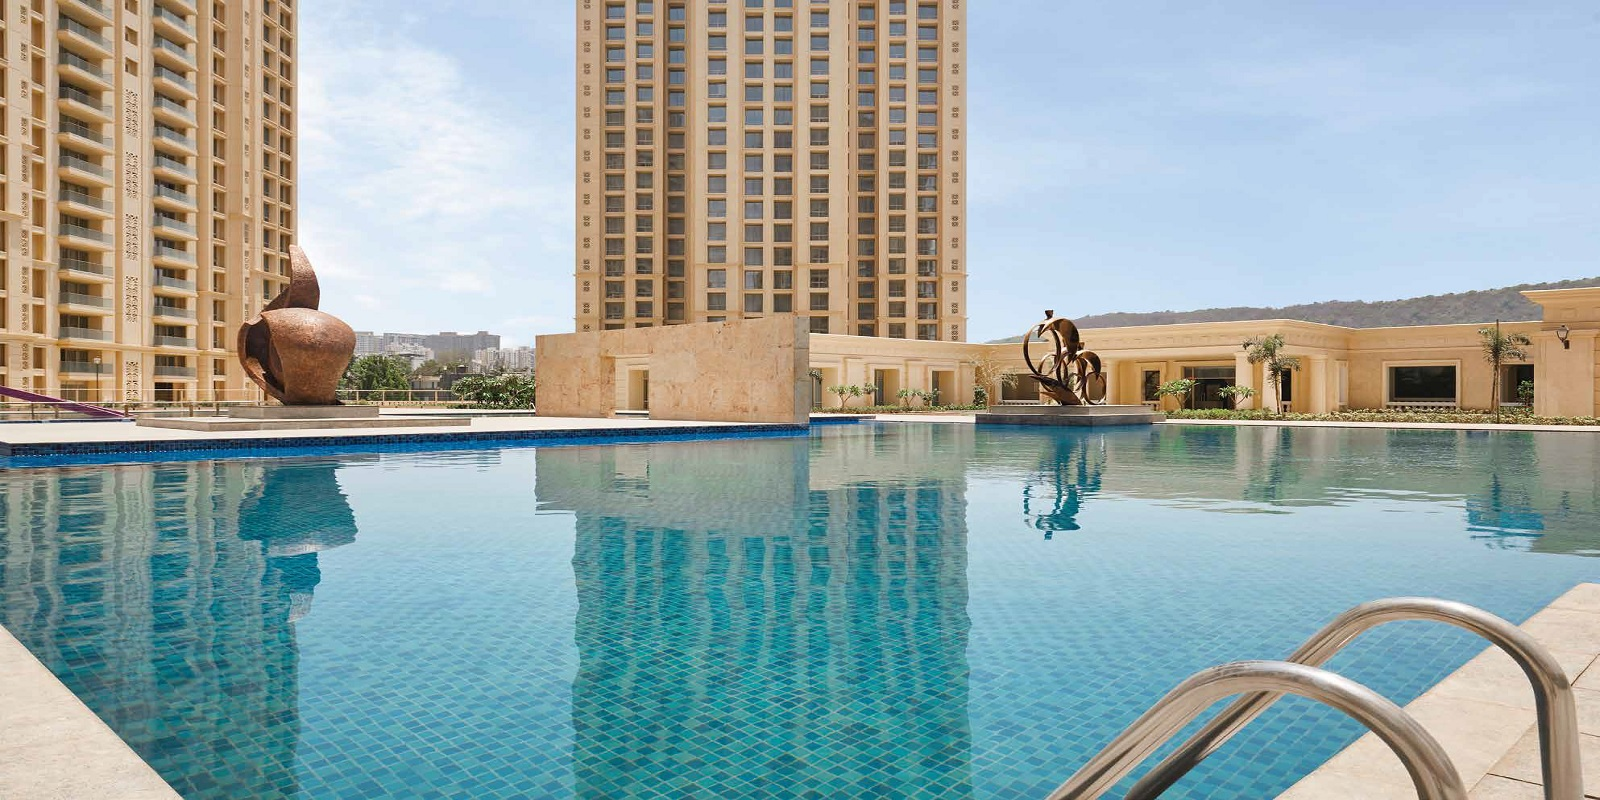 hiranandani park willow crest project amenities features1